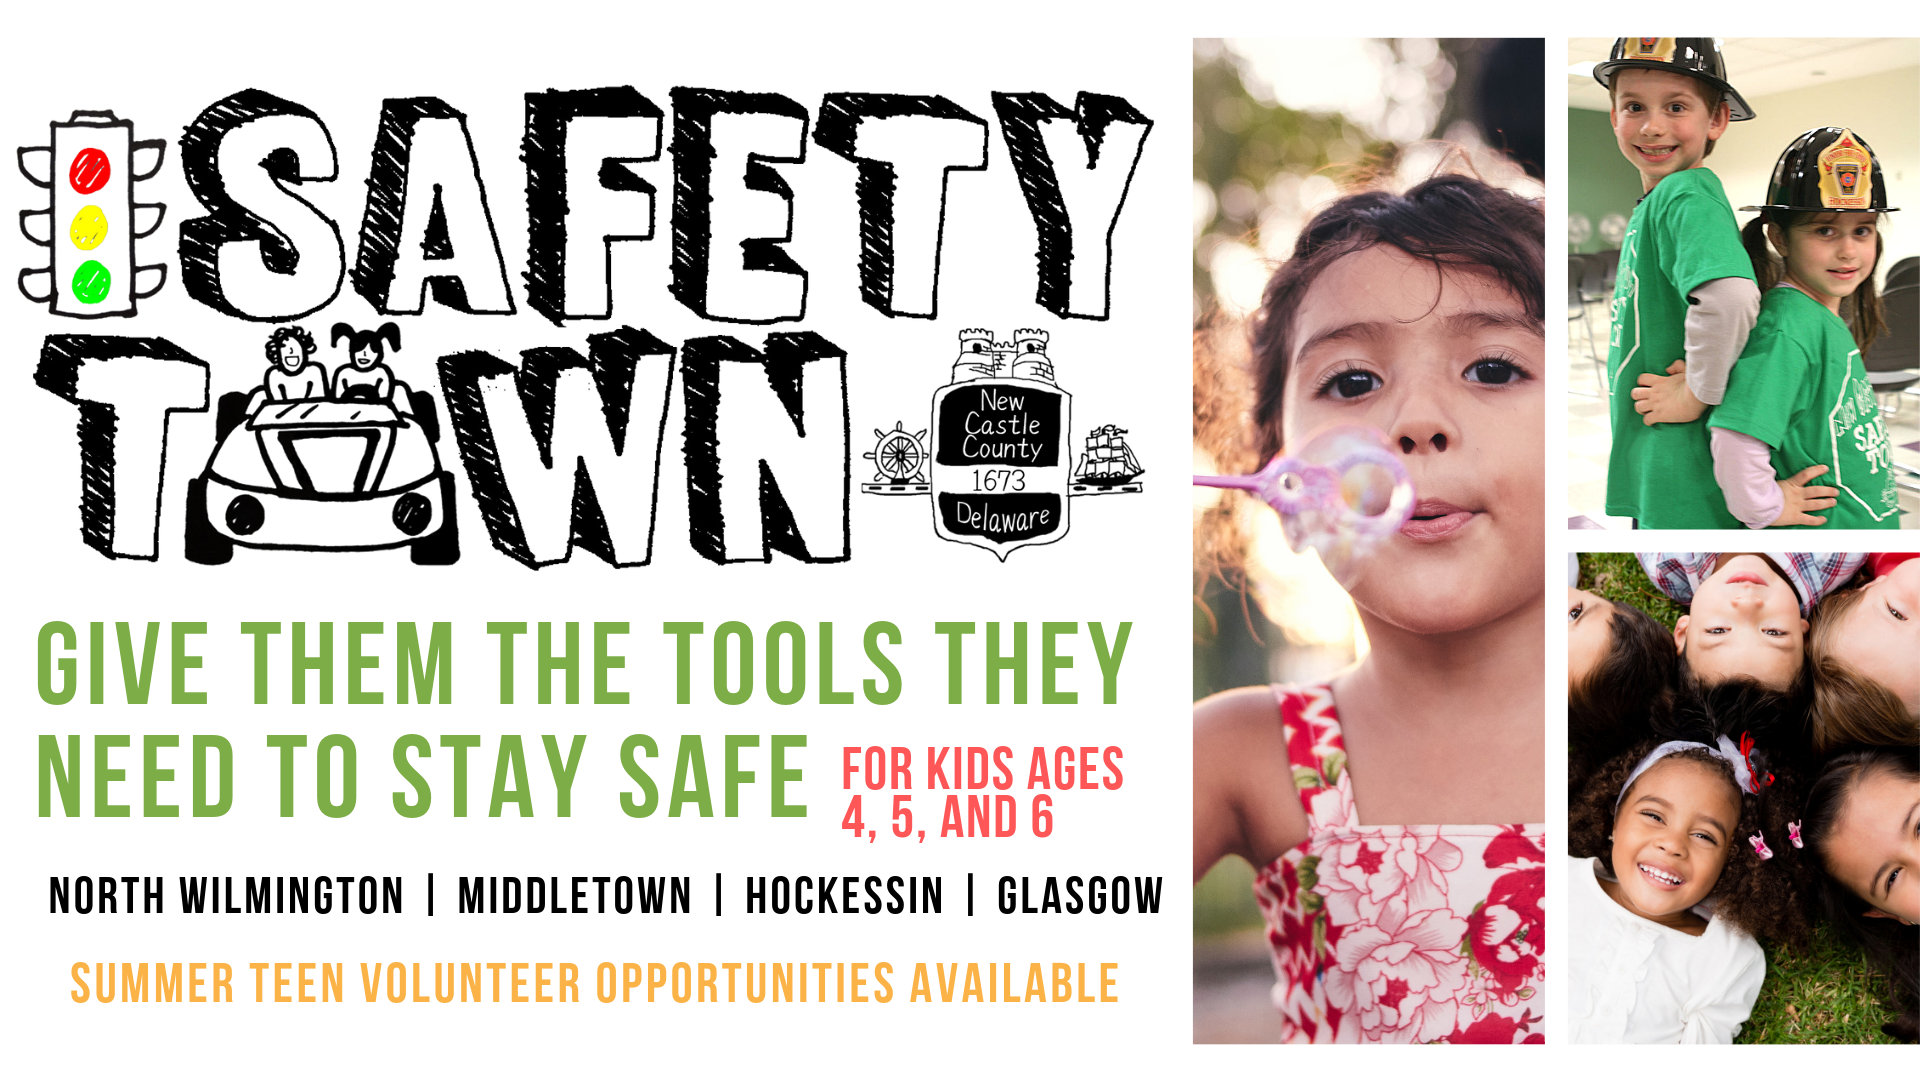 New Castle county safety town for children ages 4 5 and 6